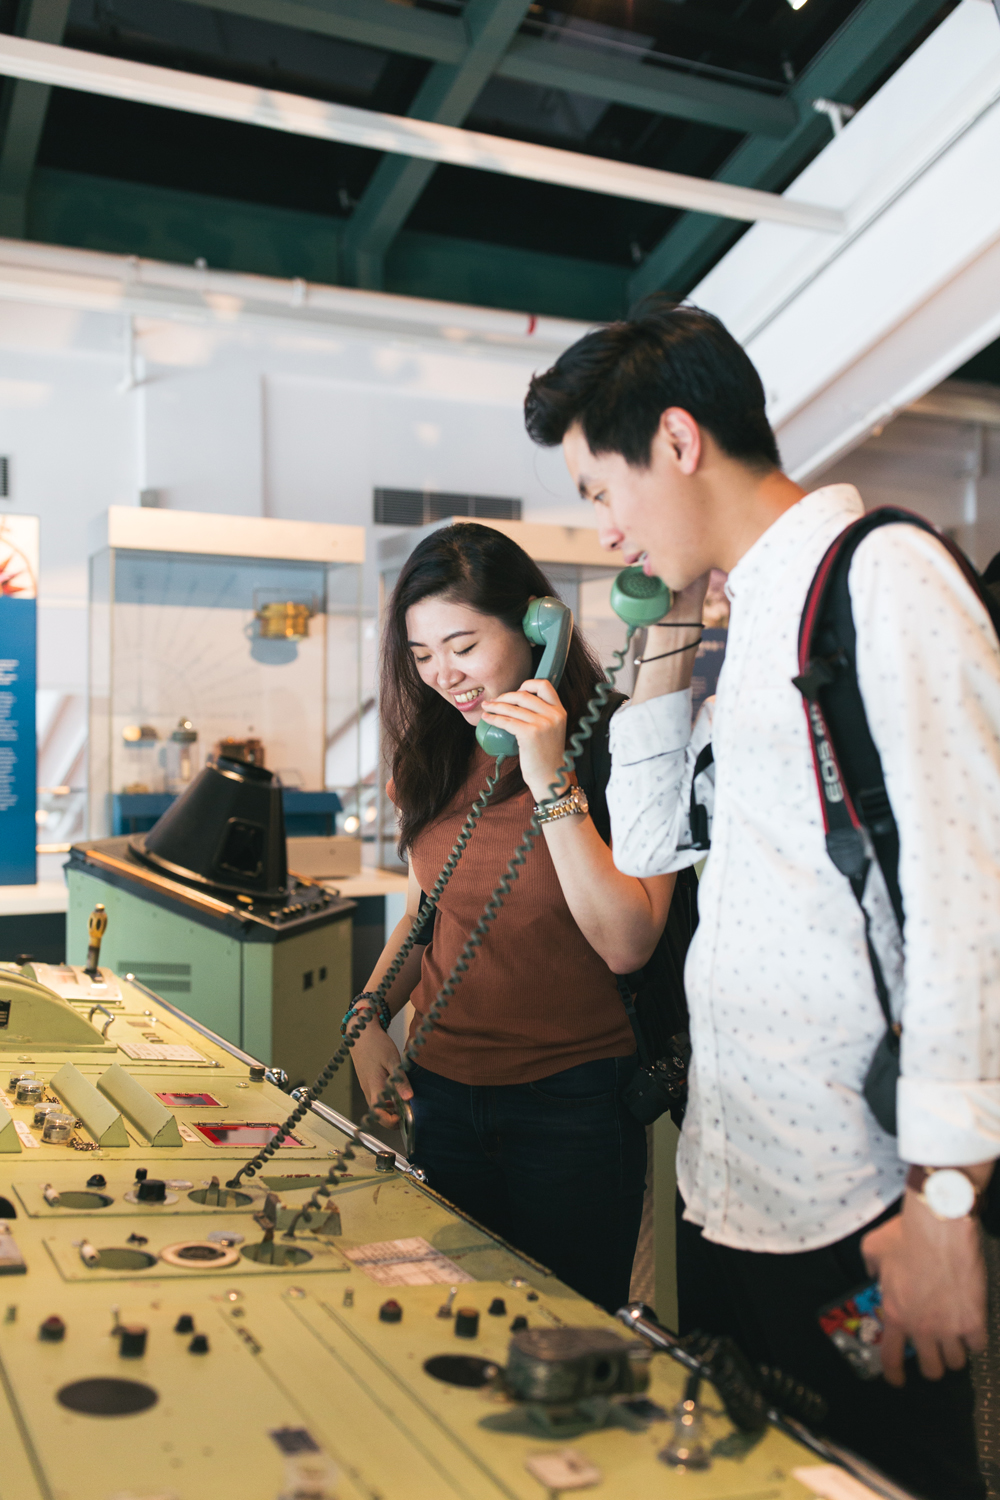 Fun times at Hong Kong Maritime Museum | influencer campaign for social media